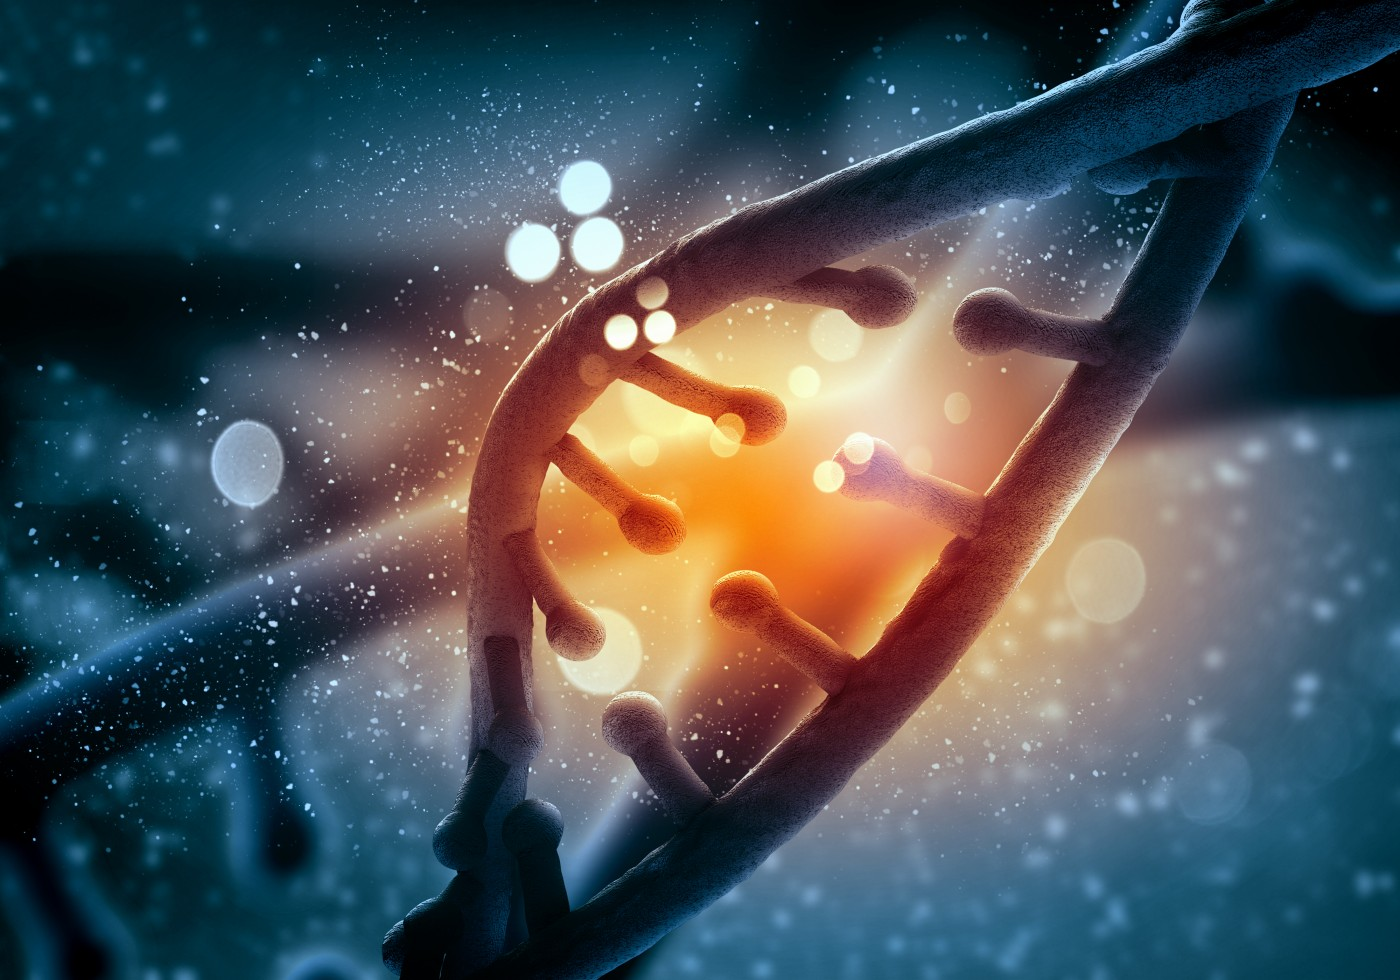 BPH Study Finds Telomerase May Be Key Player in Disease Pathology